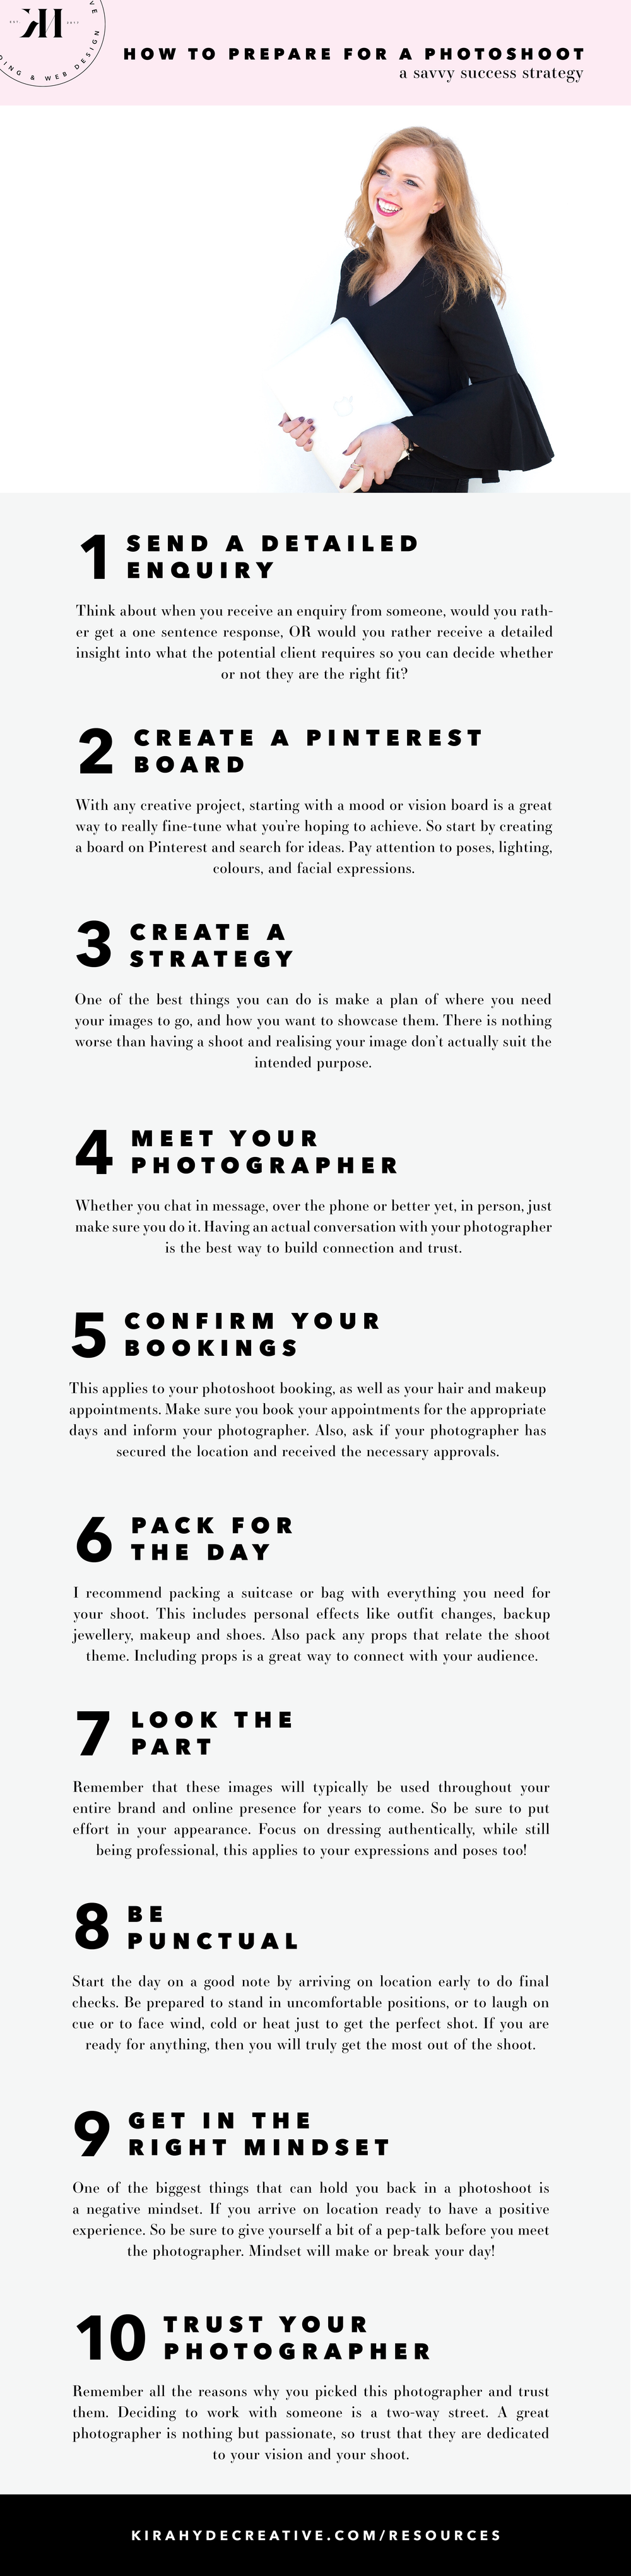 How to Prepare For a Photoshoot - Kira Hyde Creative